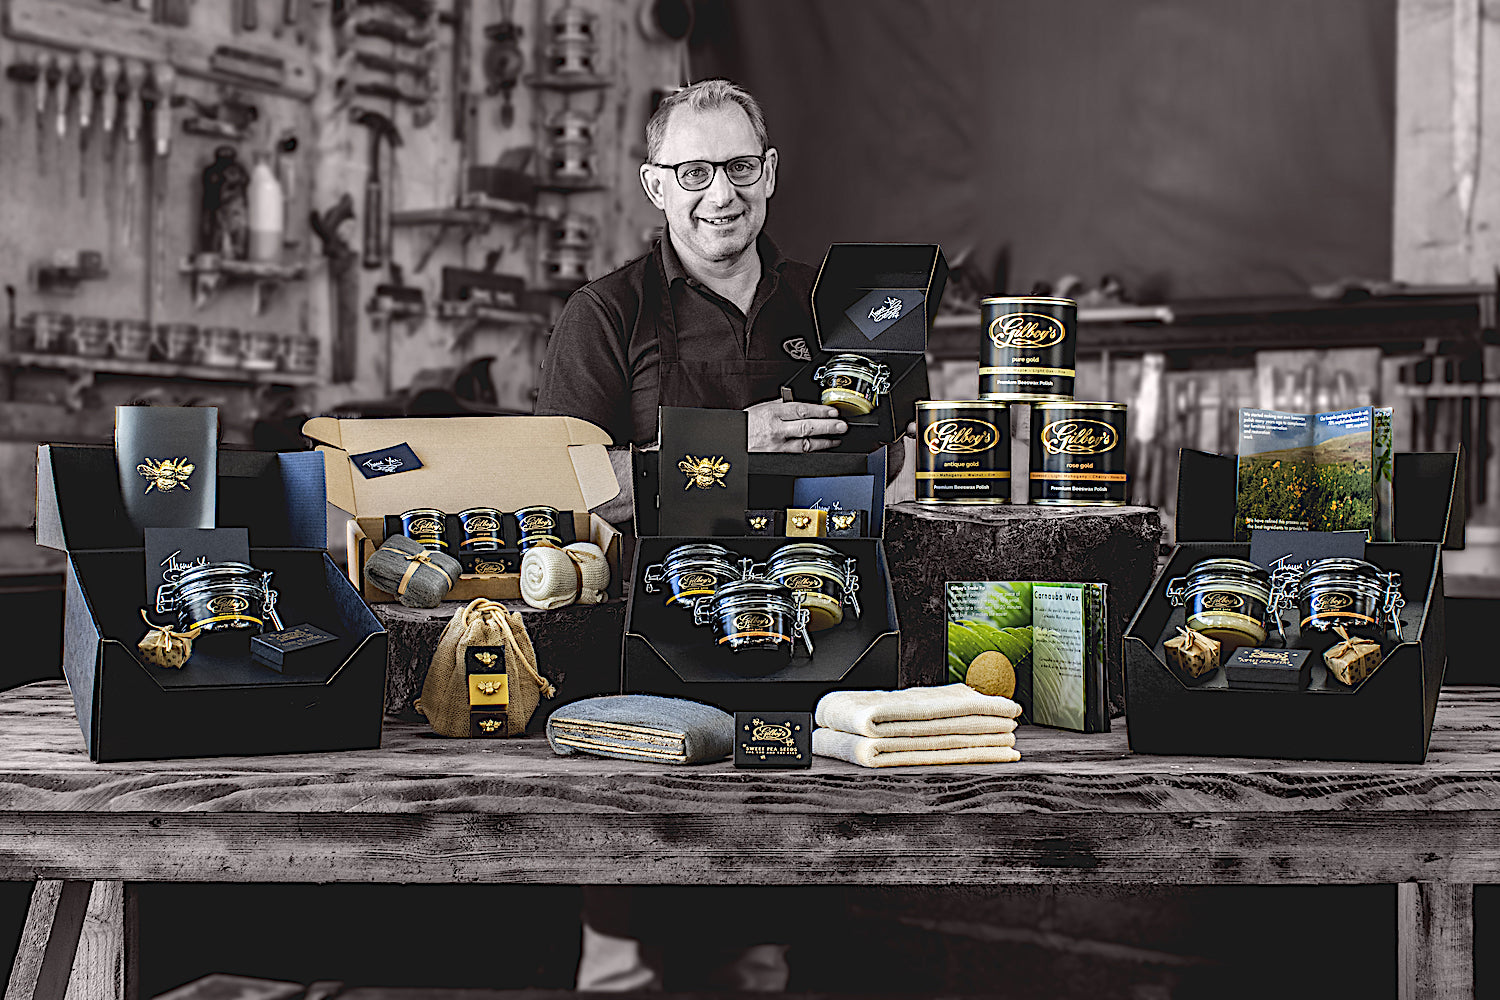 simon gilboy with the range of natural beeswax products